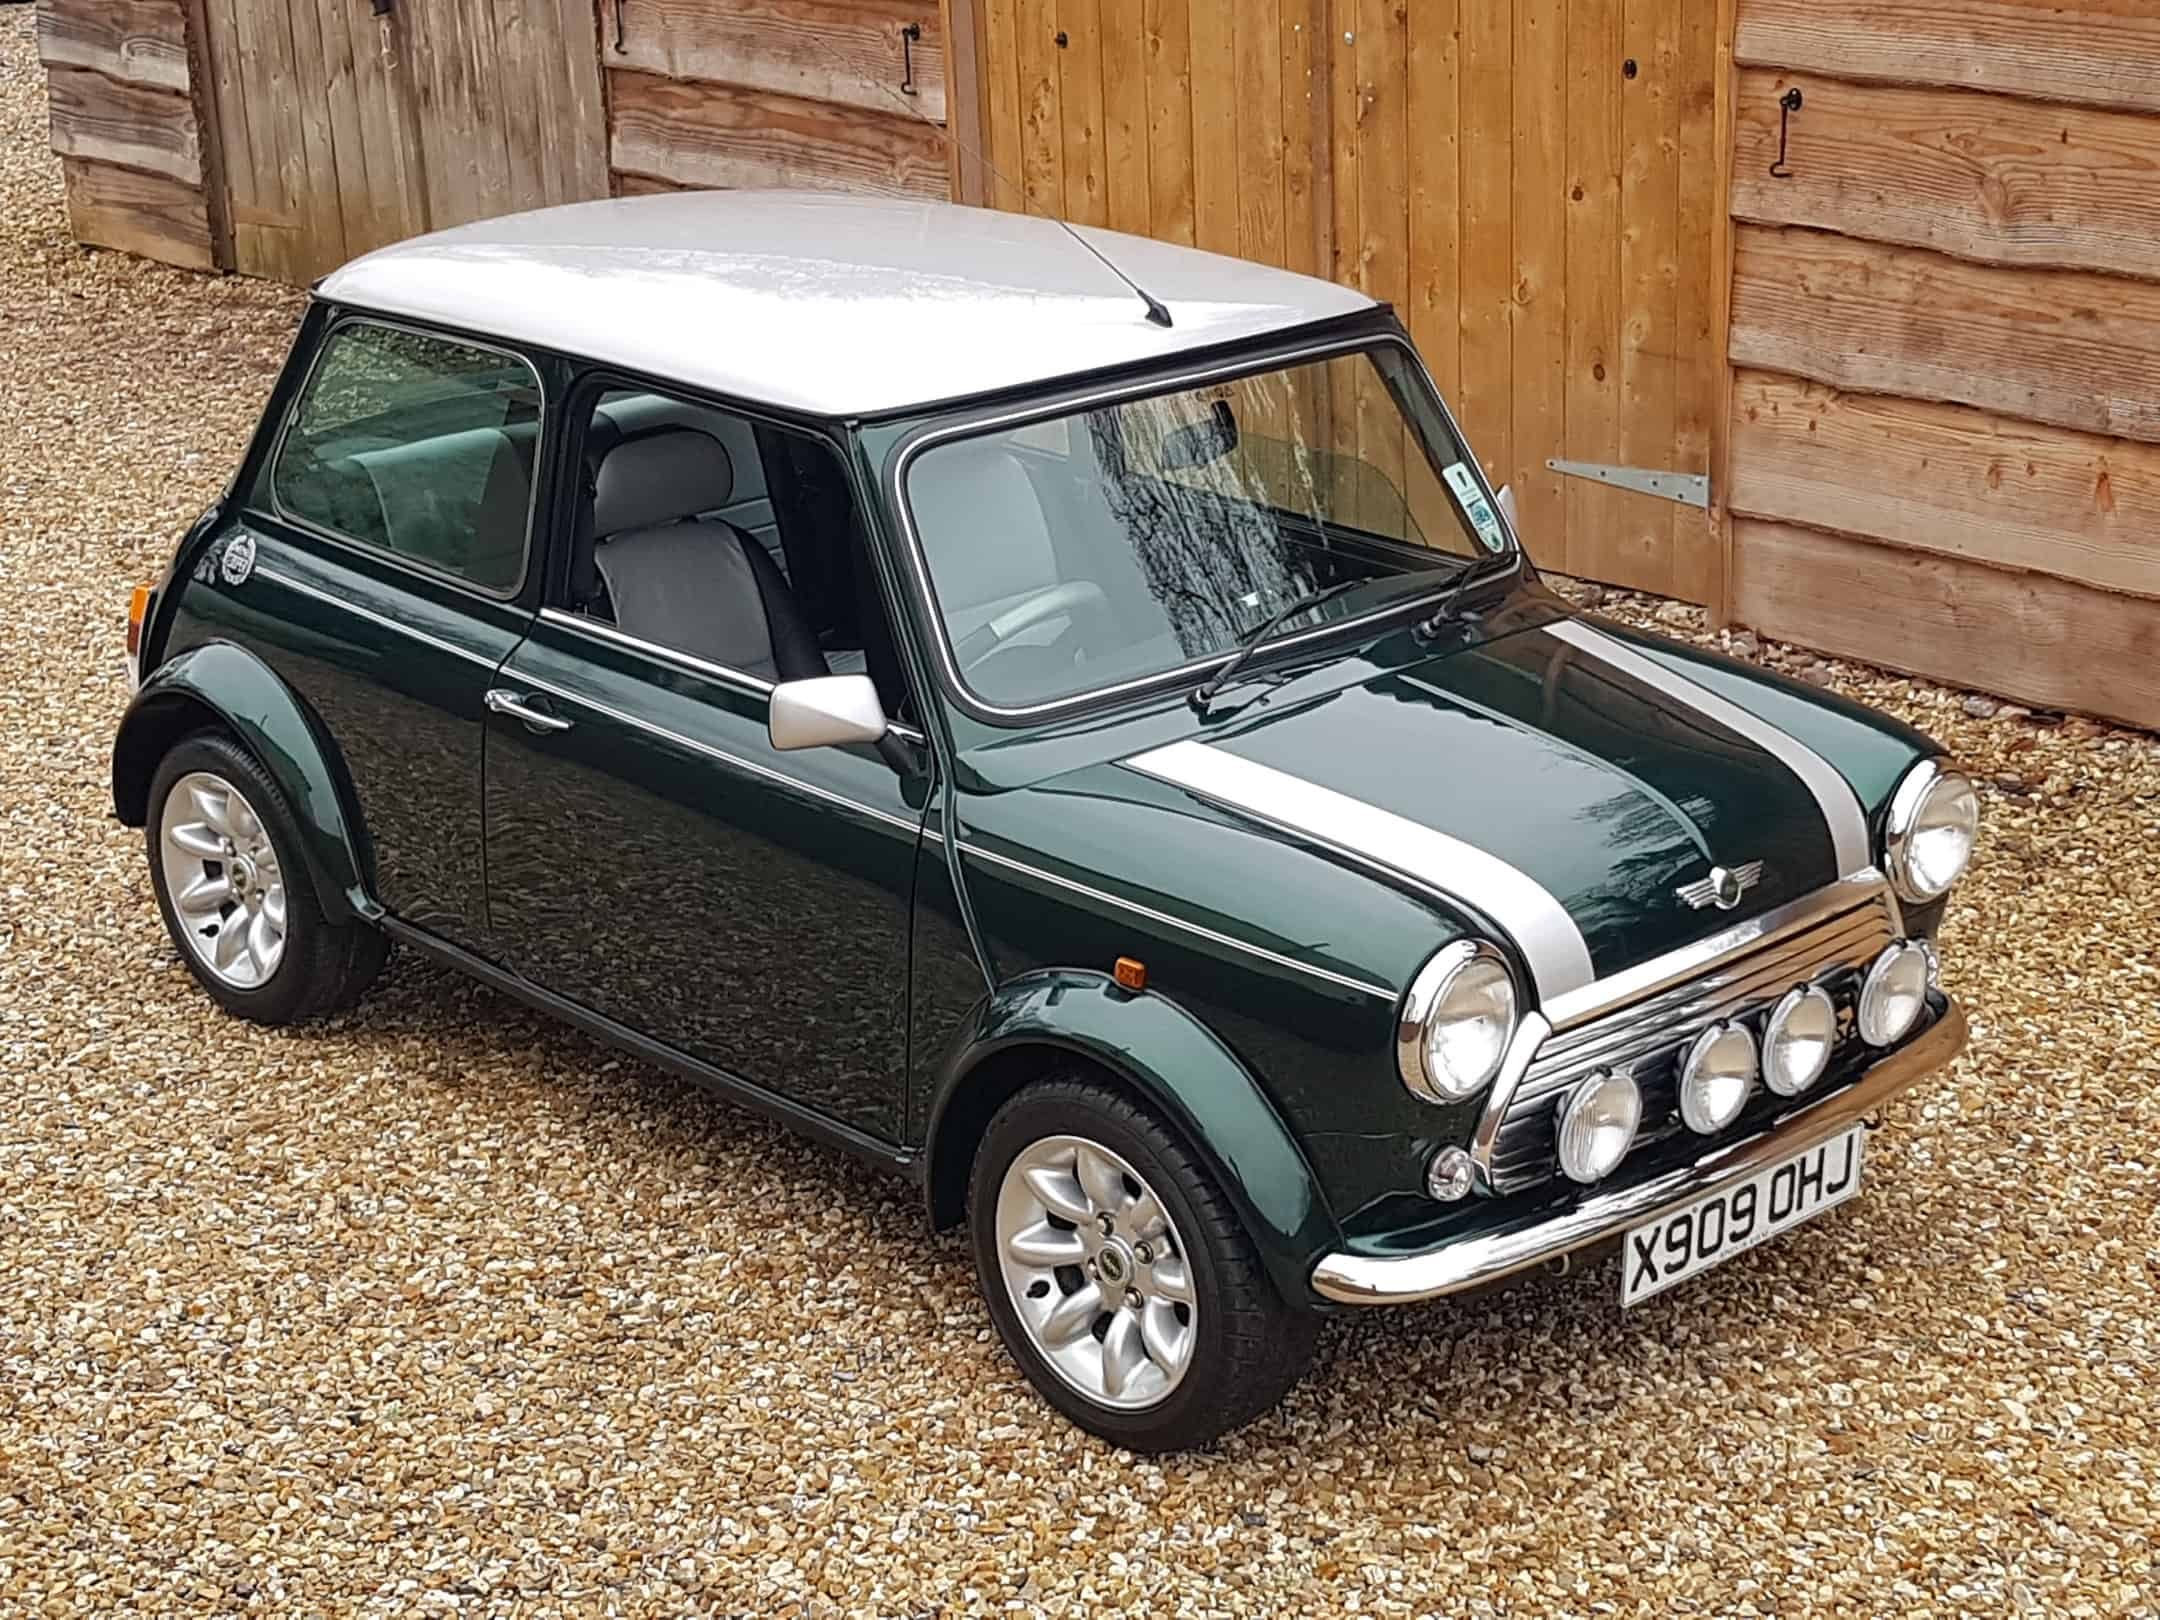 ** NOW SOLD ** Stunning 2000 Cooper Sport On Just 4650 Miles From New.